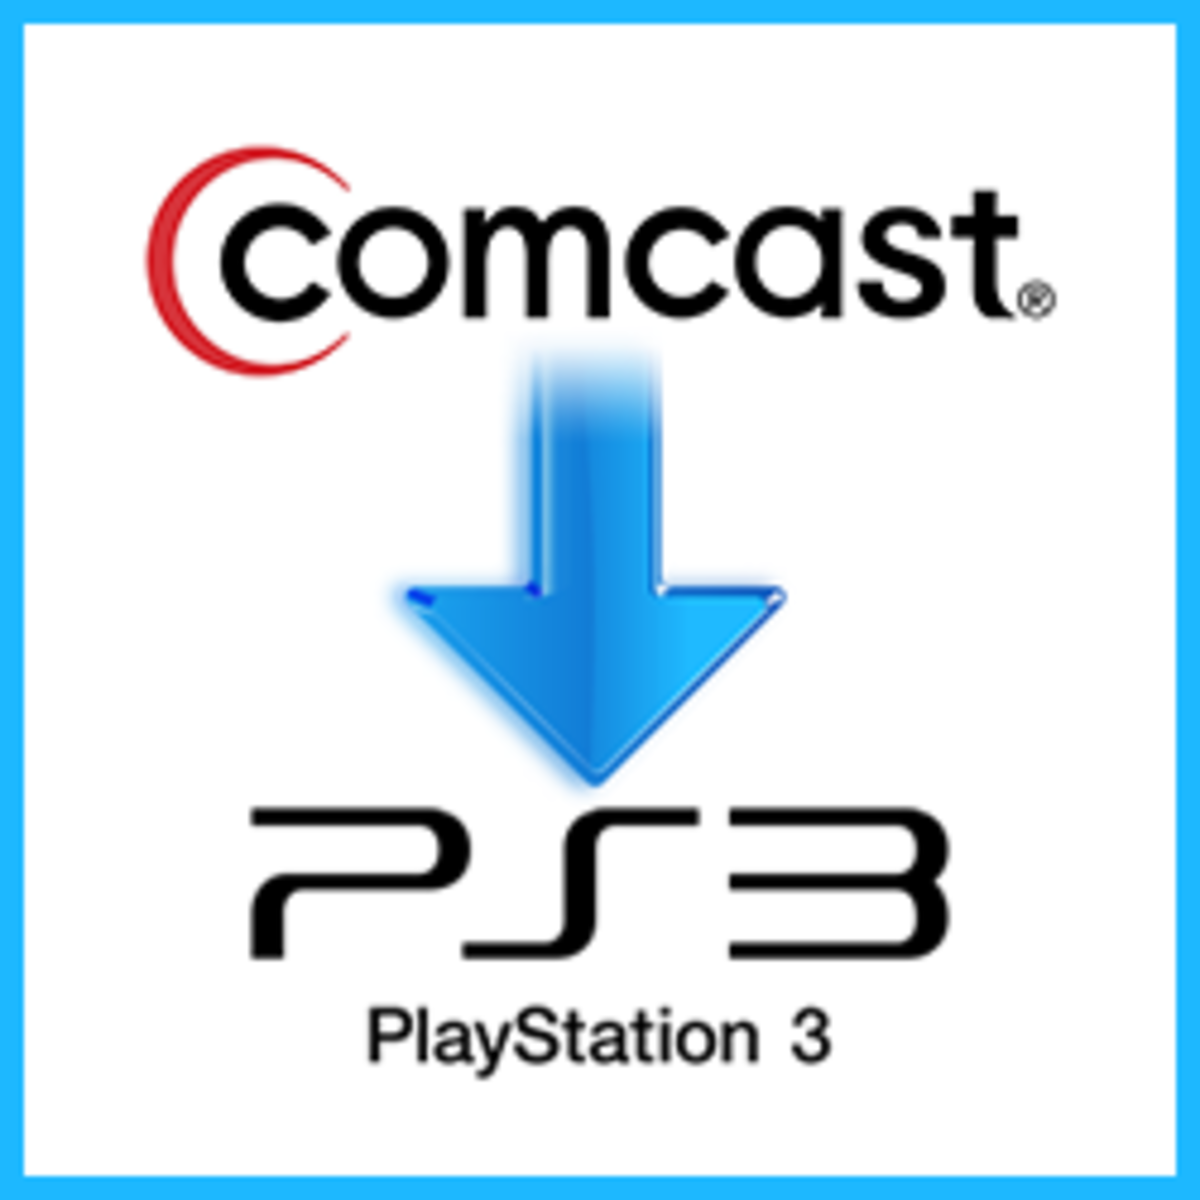 How to Connect Your PS3 to Comcast WiFi | LevelSkip